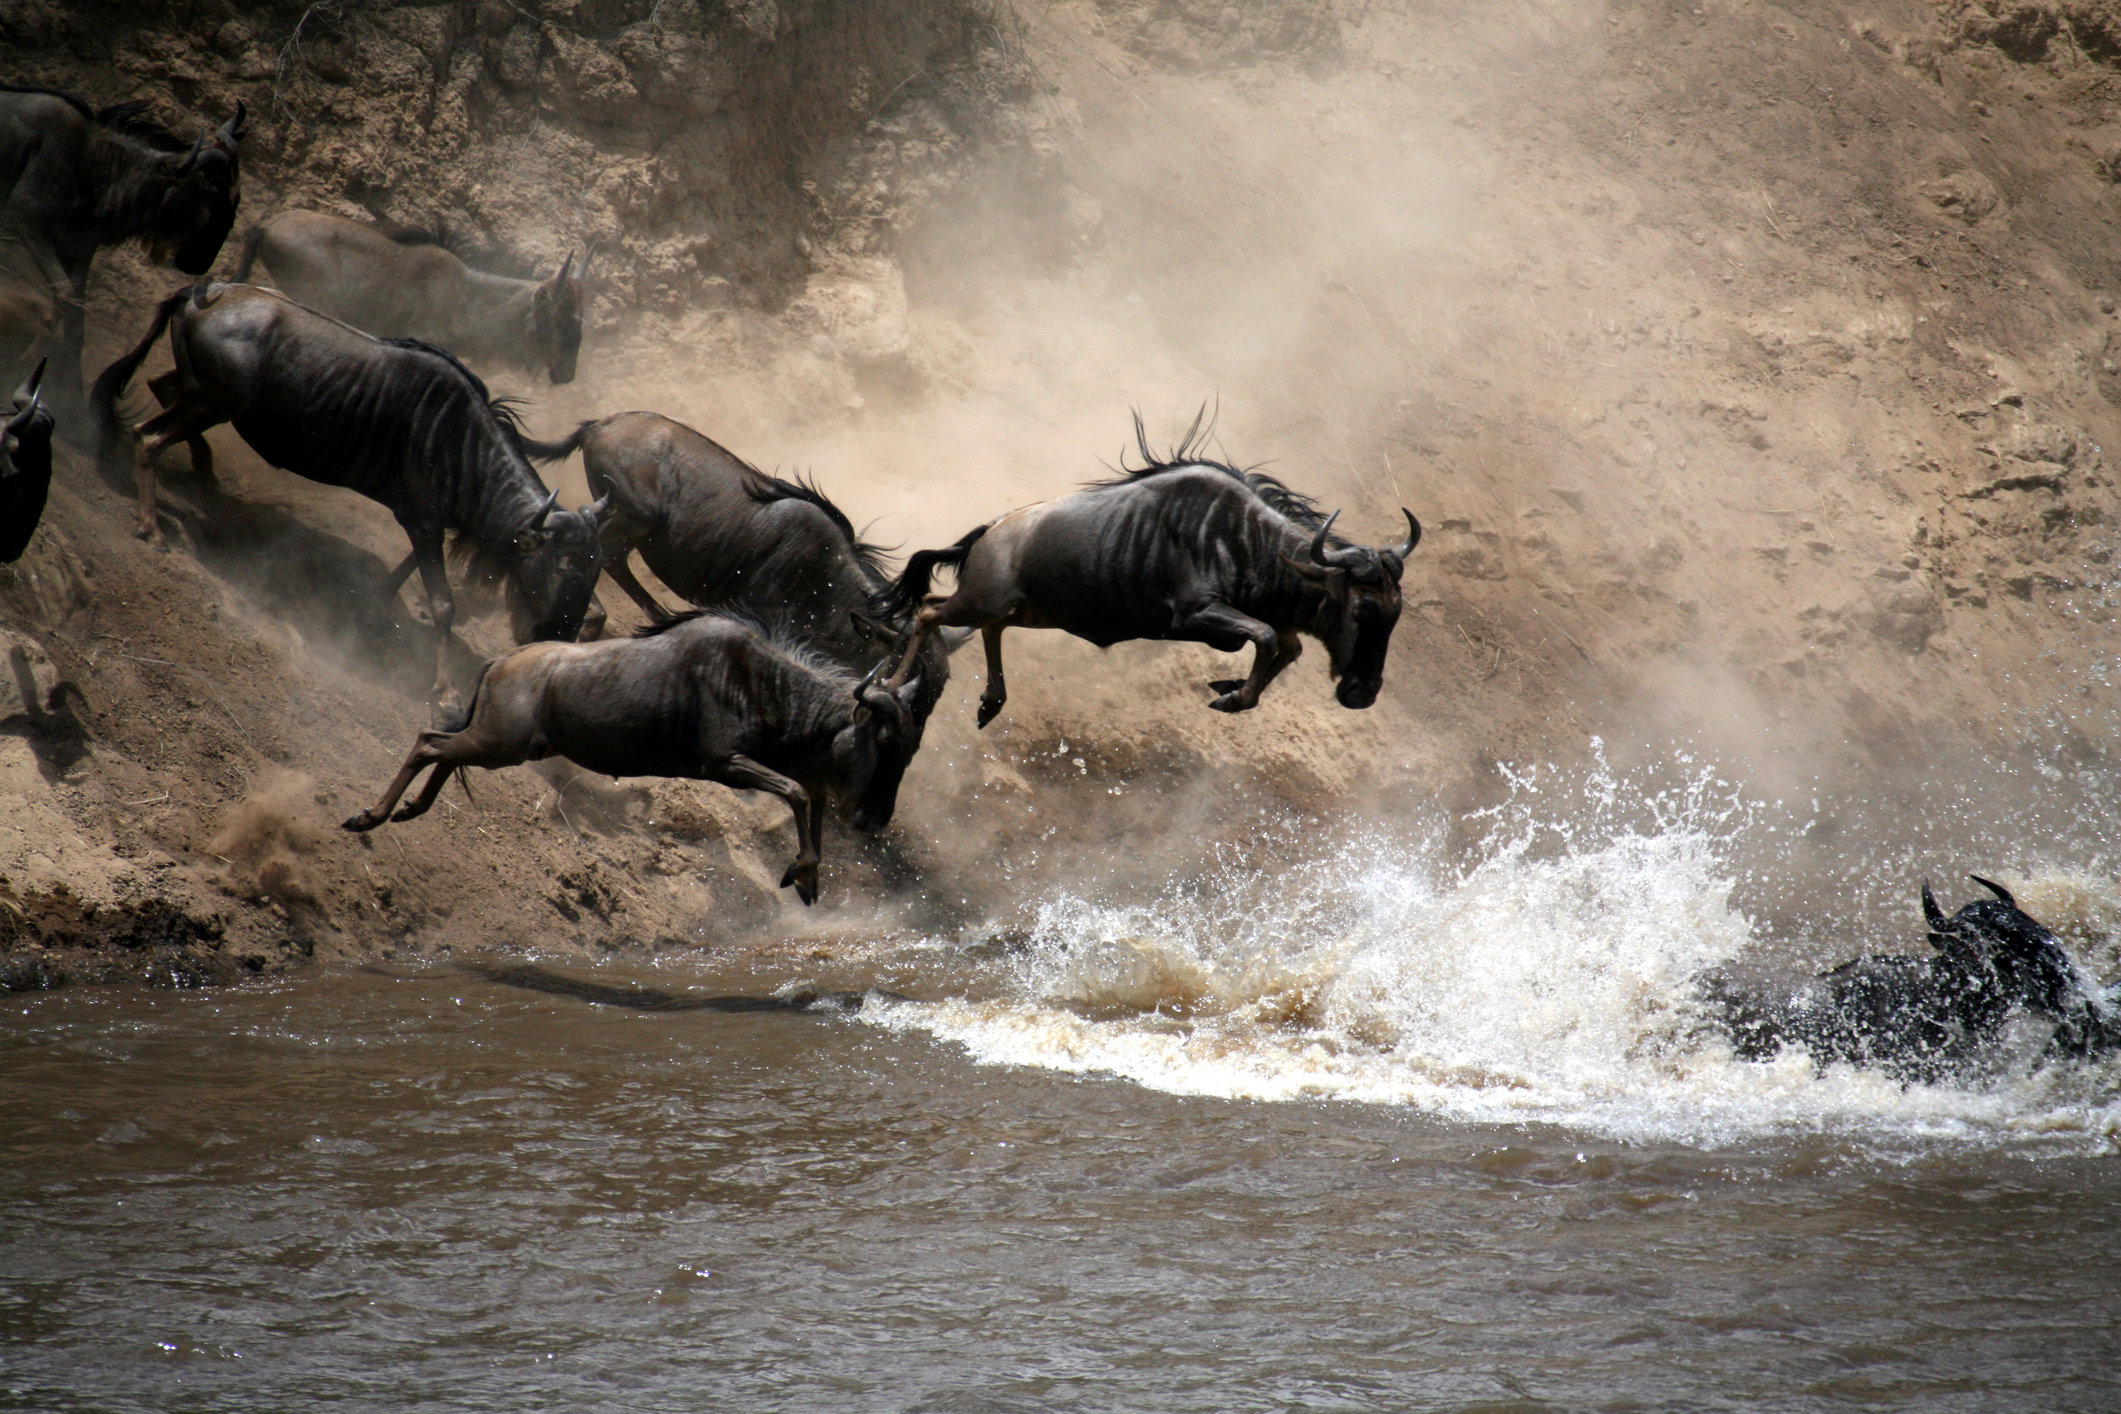 wildbeest river crossing.jpg